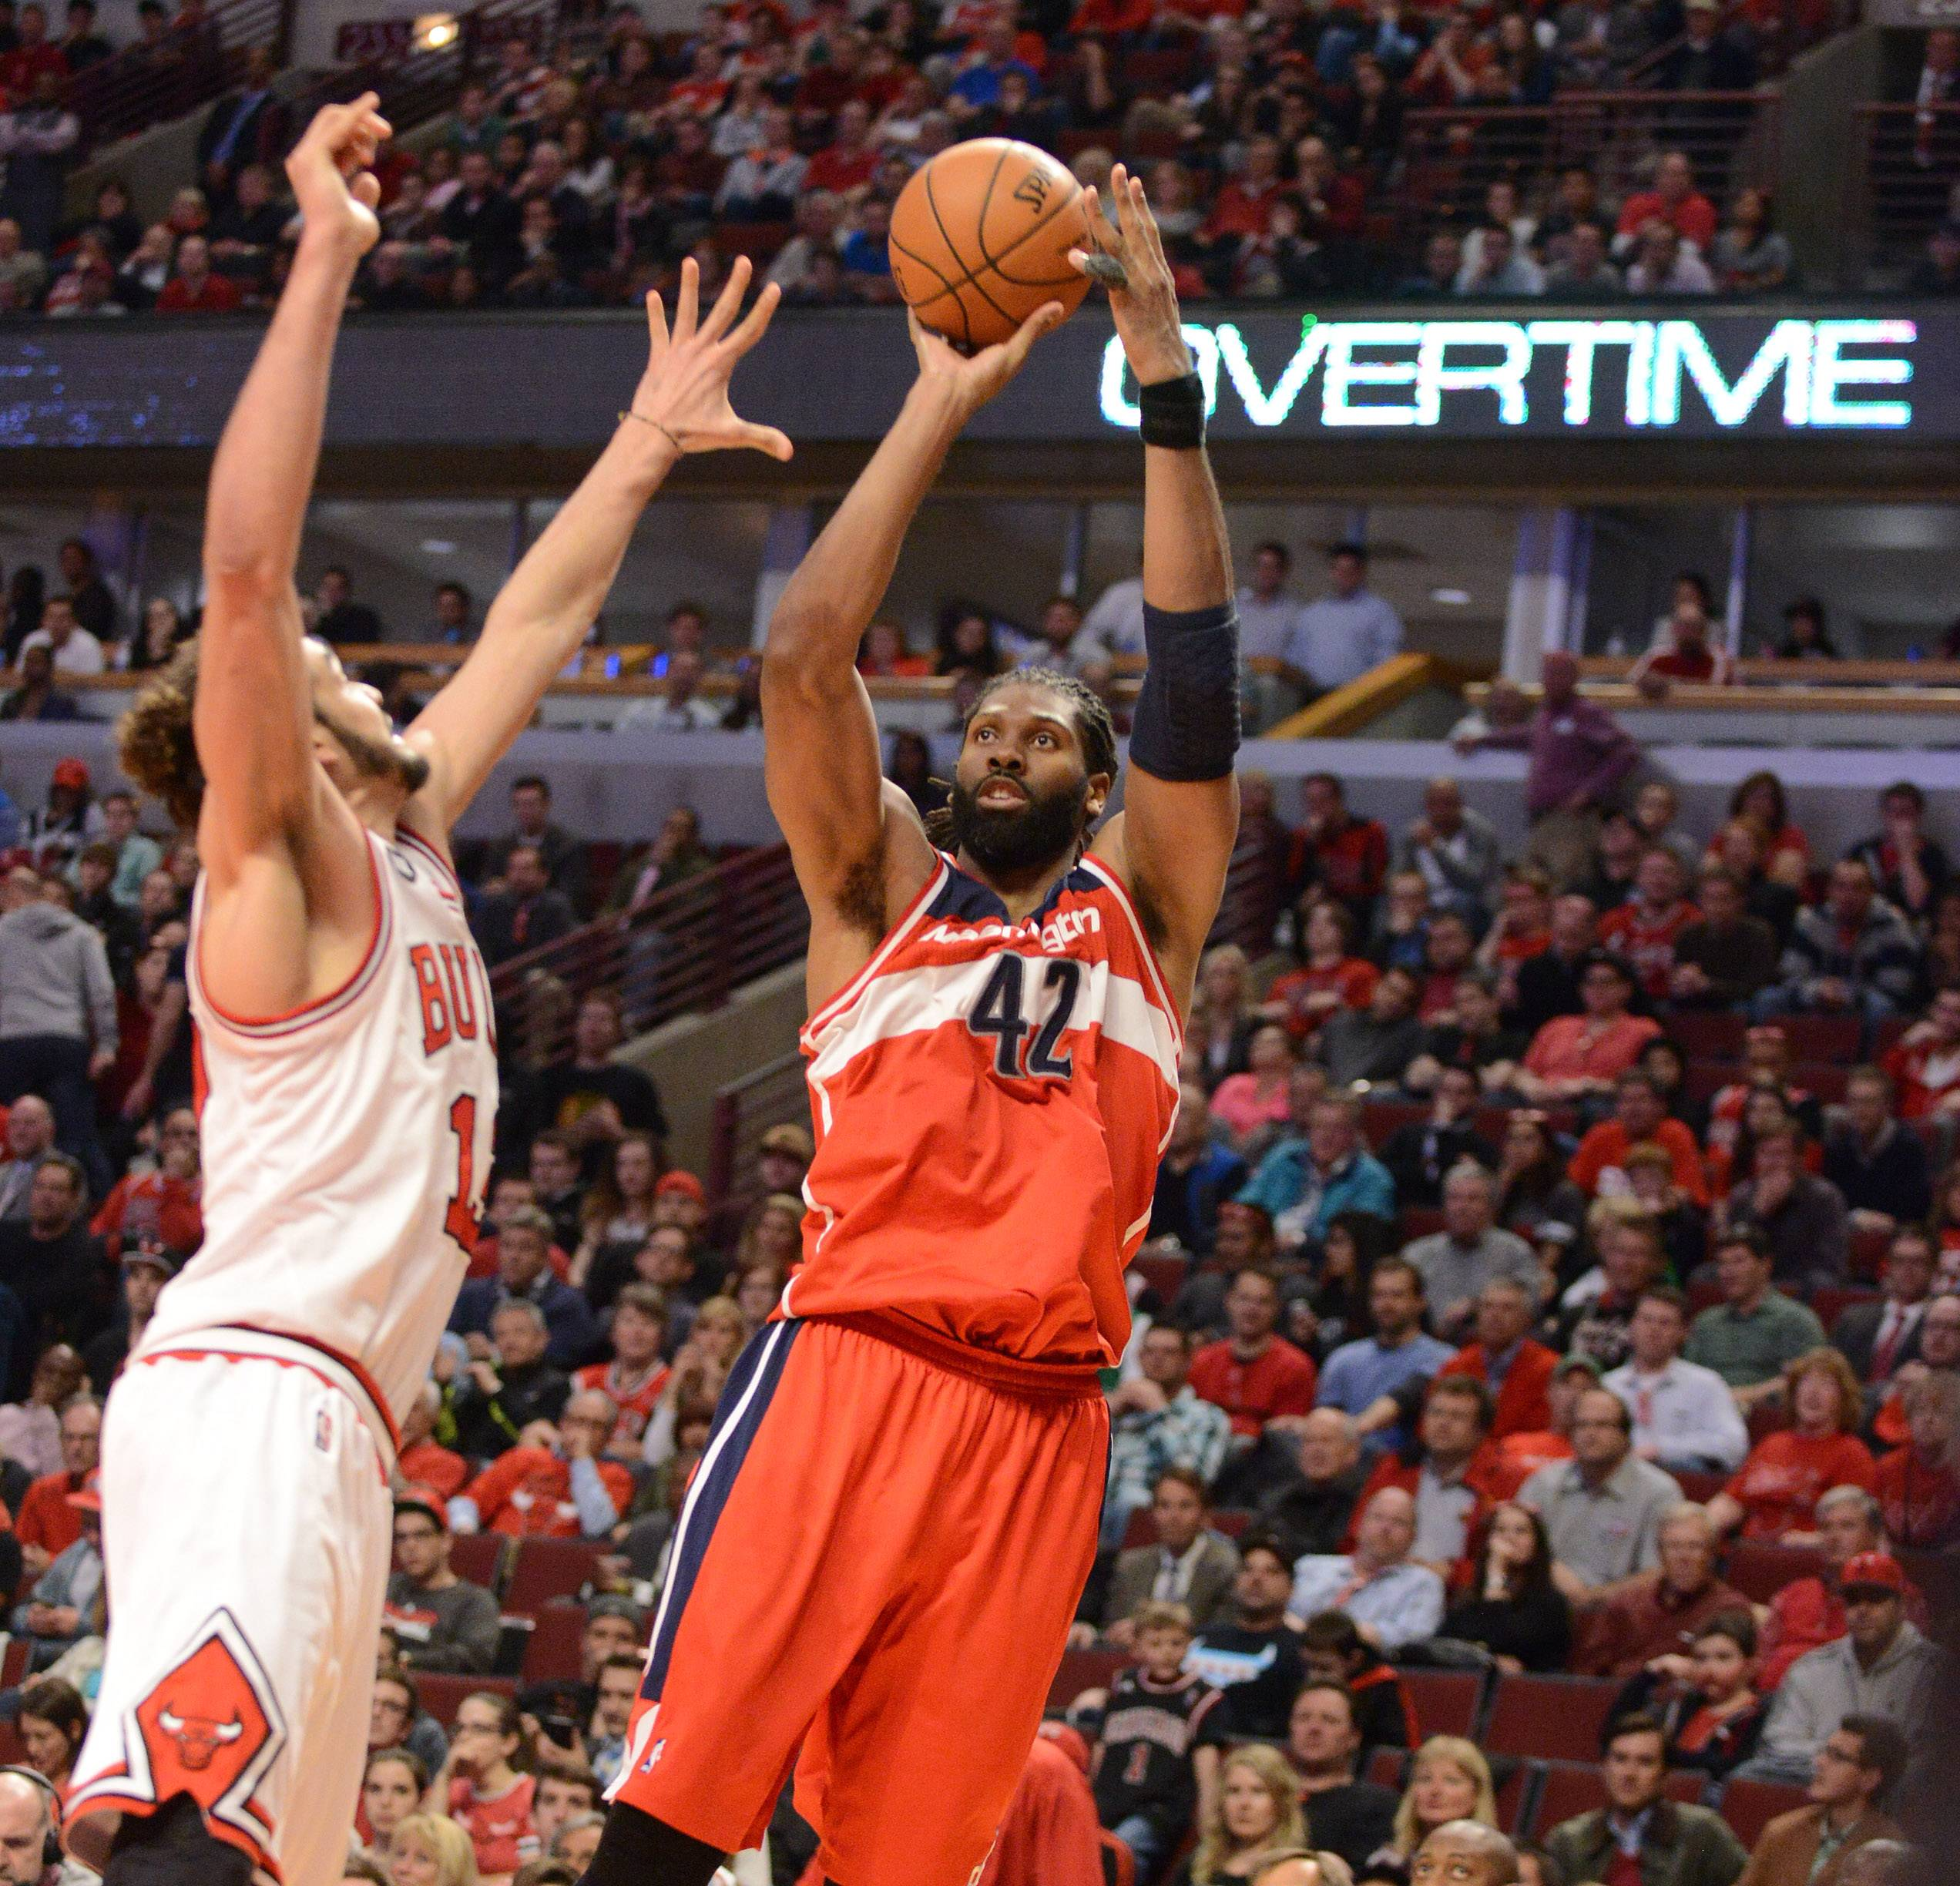 Washington Wizards forward Nene (42) scores over Chicago Bulls center Joakim Noah (13) in overtime.